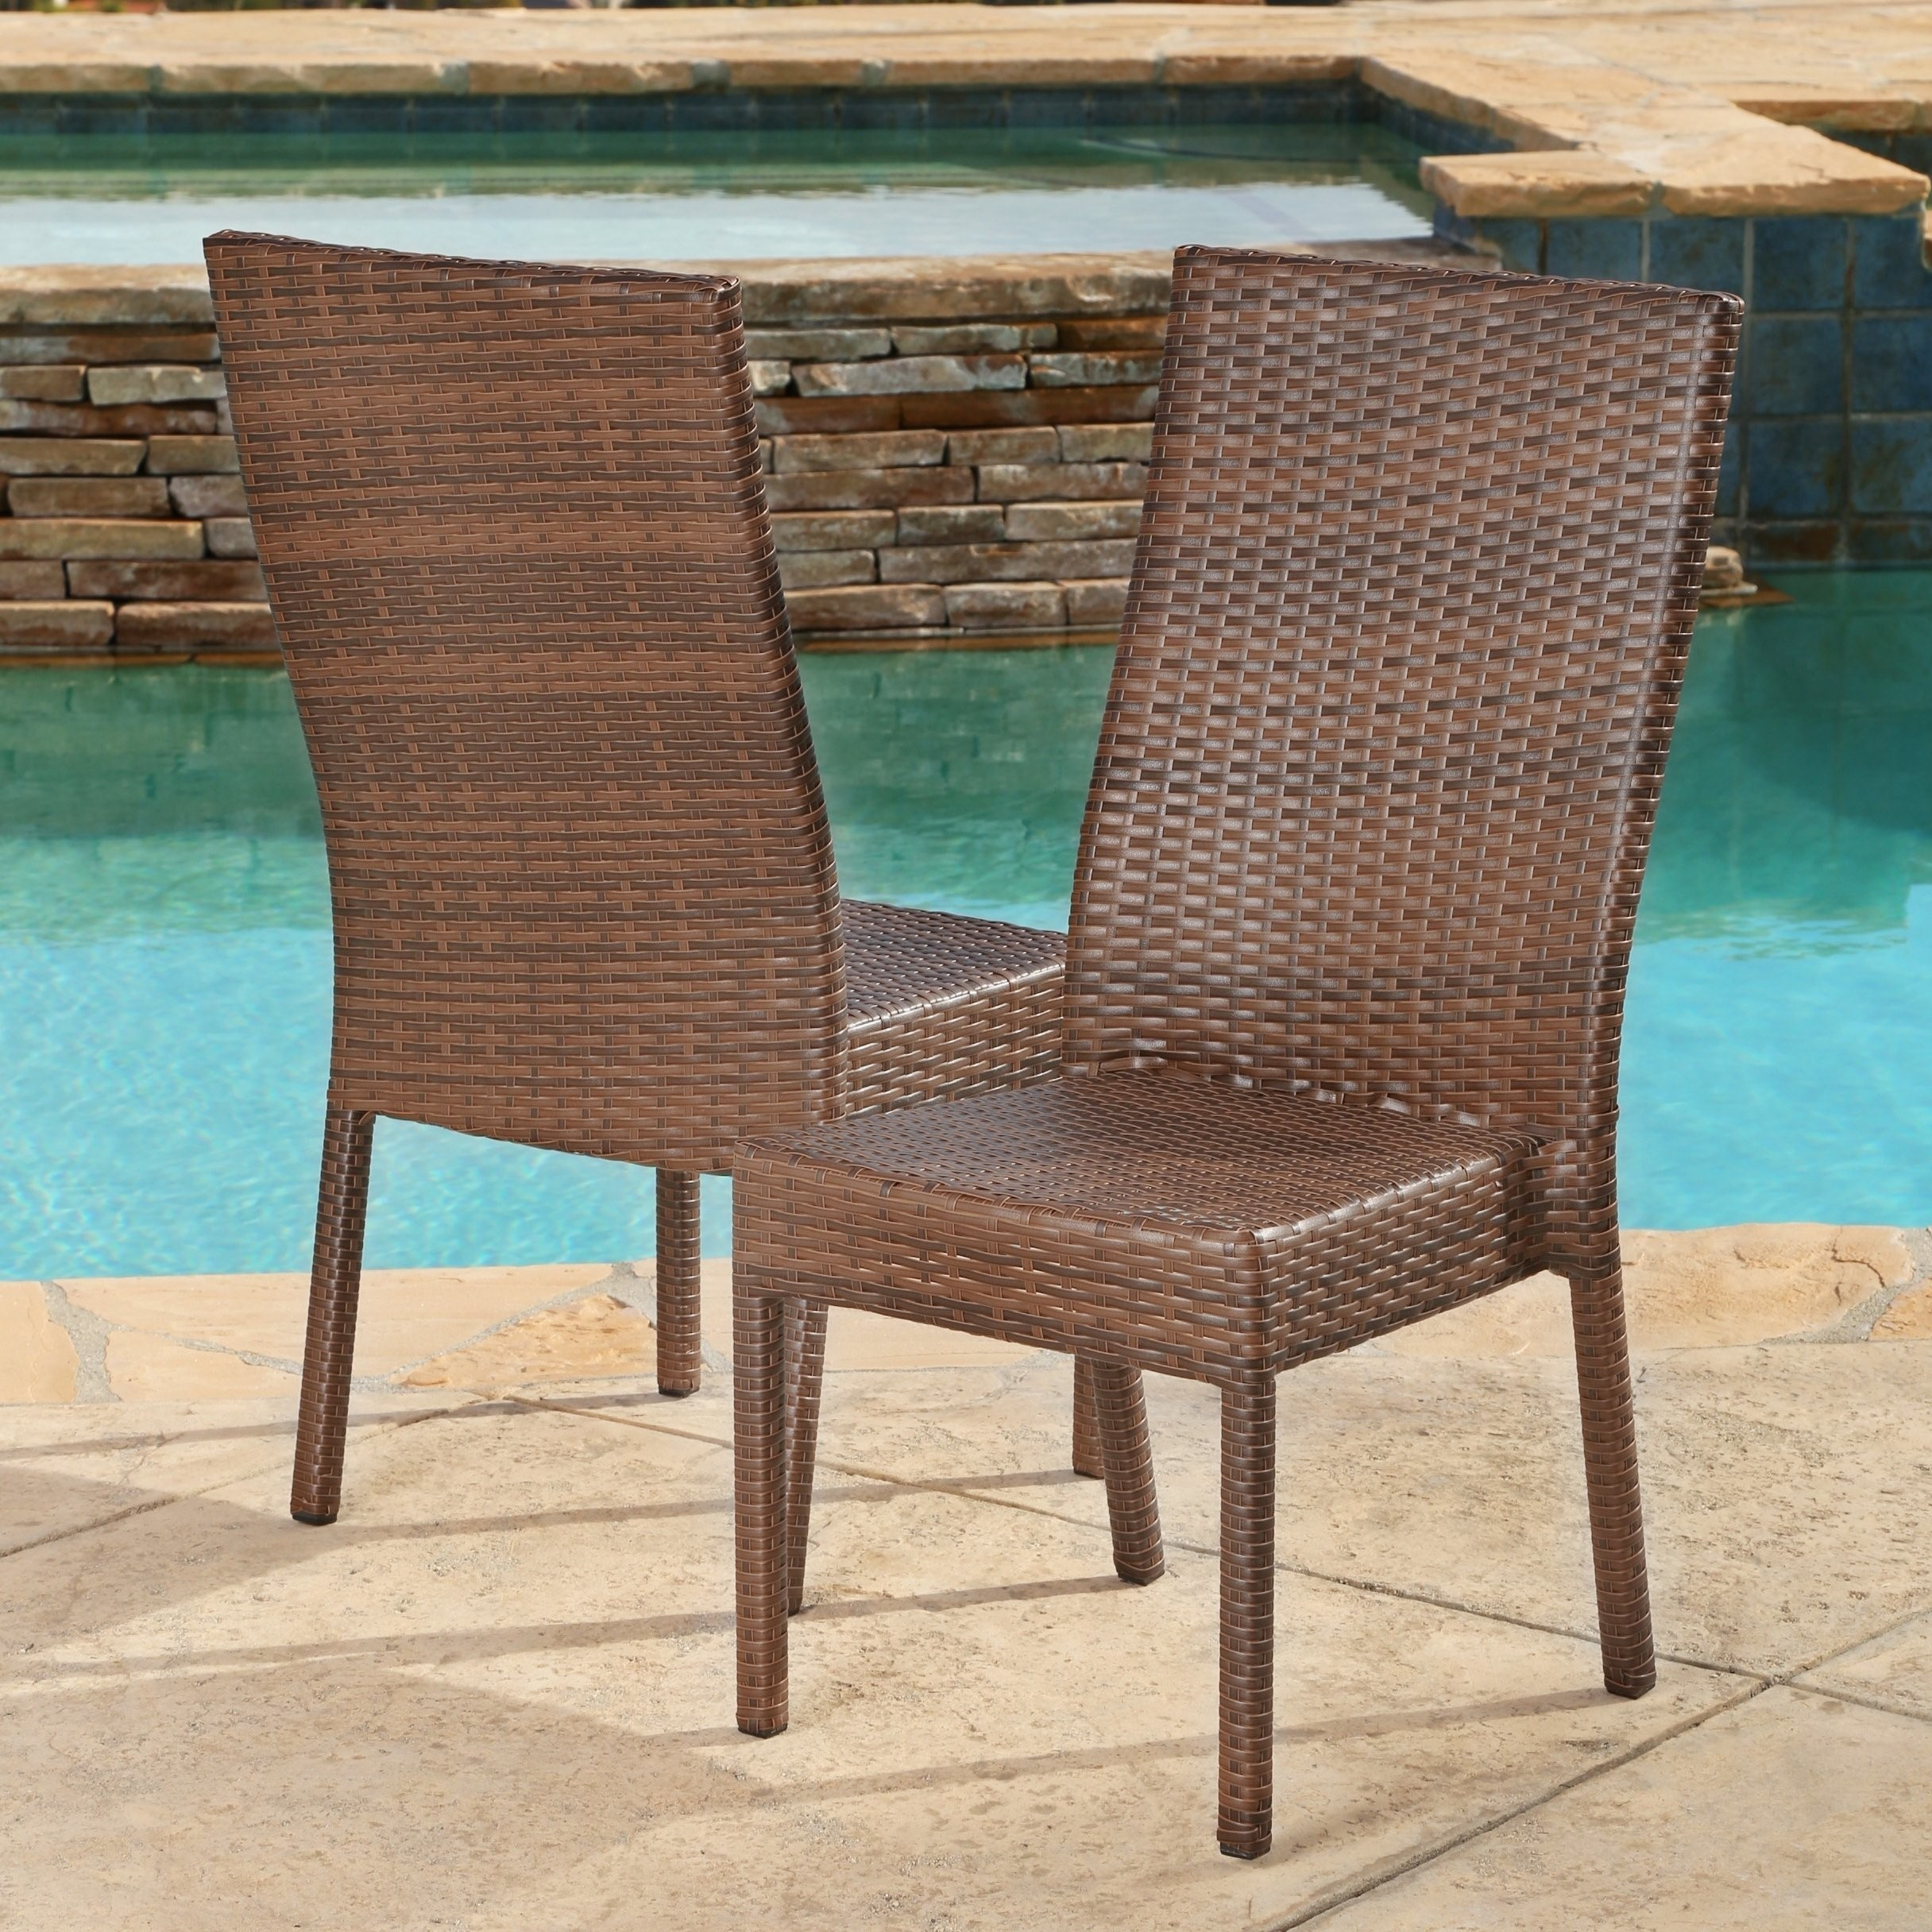 gallant outdoor wicker dining chairs for cozy homes accent tables high back cane kitchen rocking round resin coffee table full bedroom furniture dale tiffany shades frosted glass